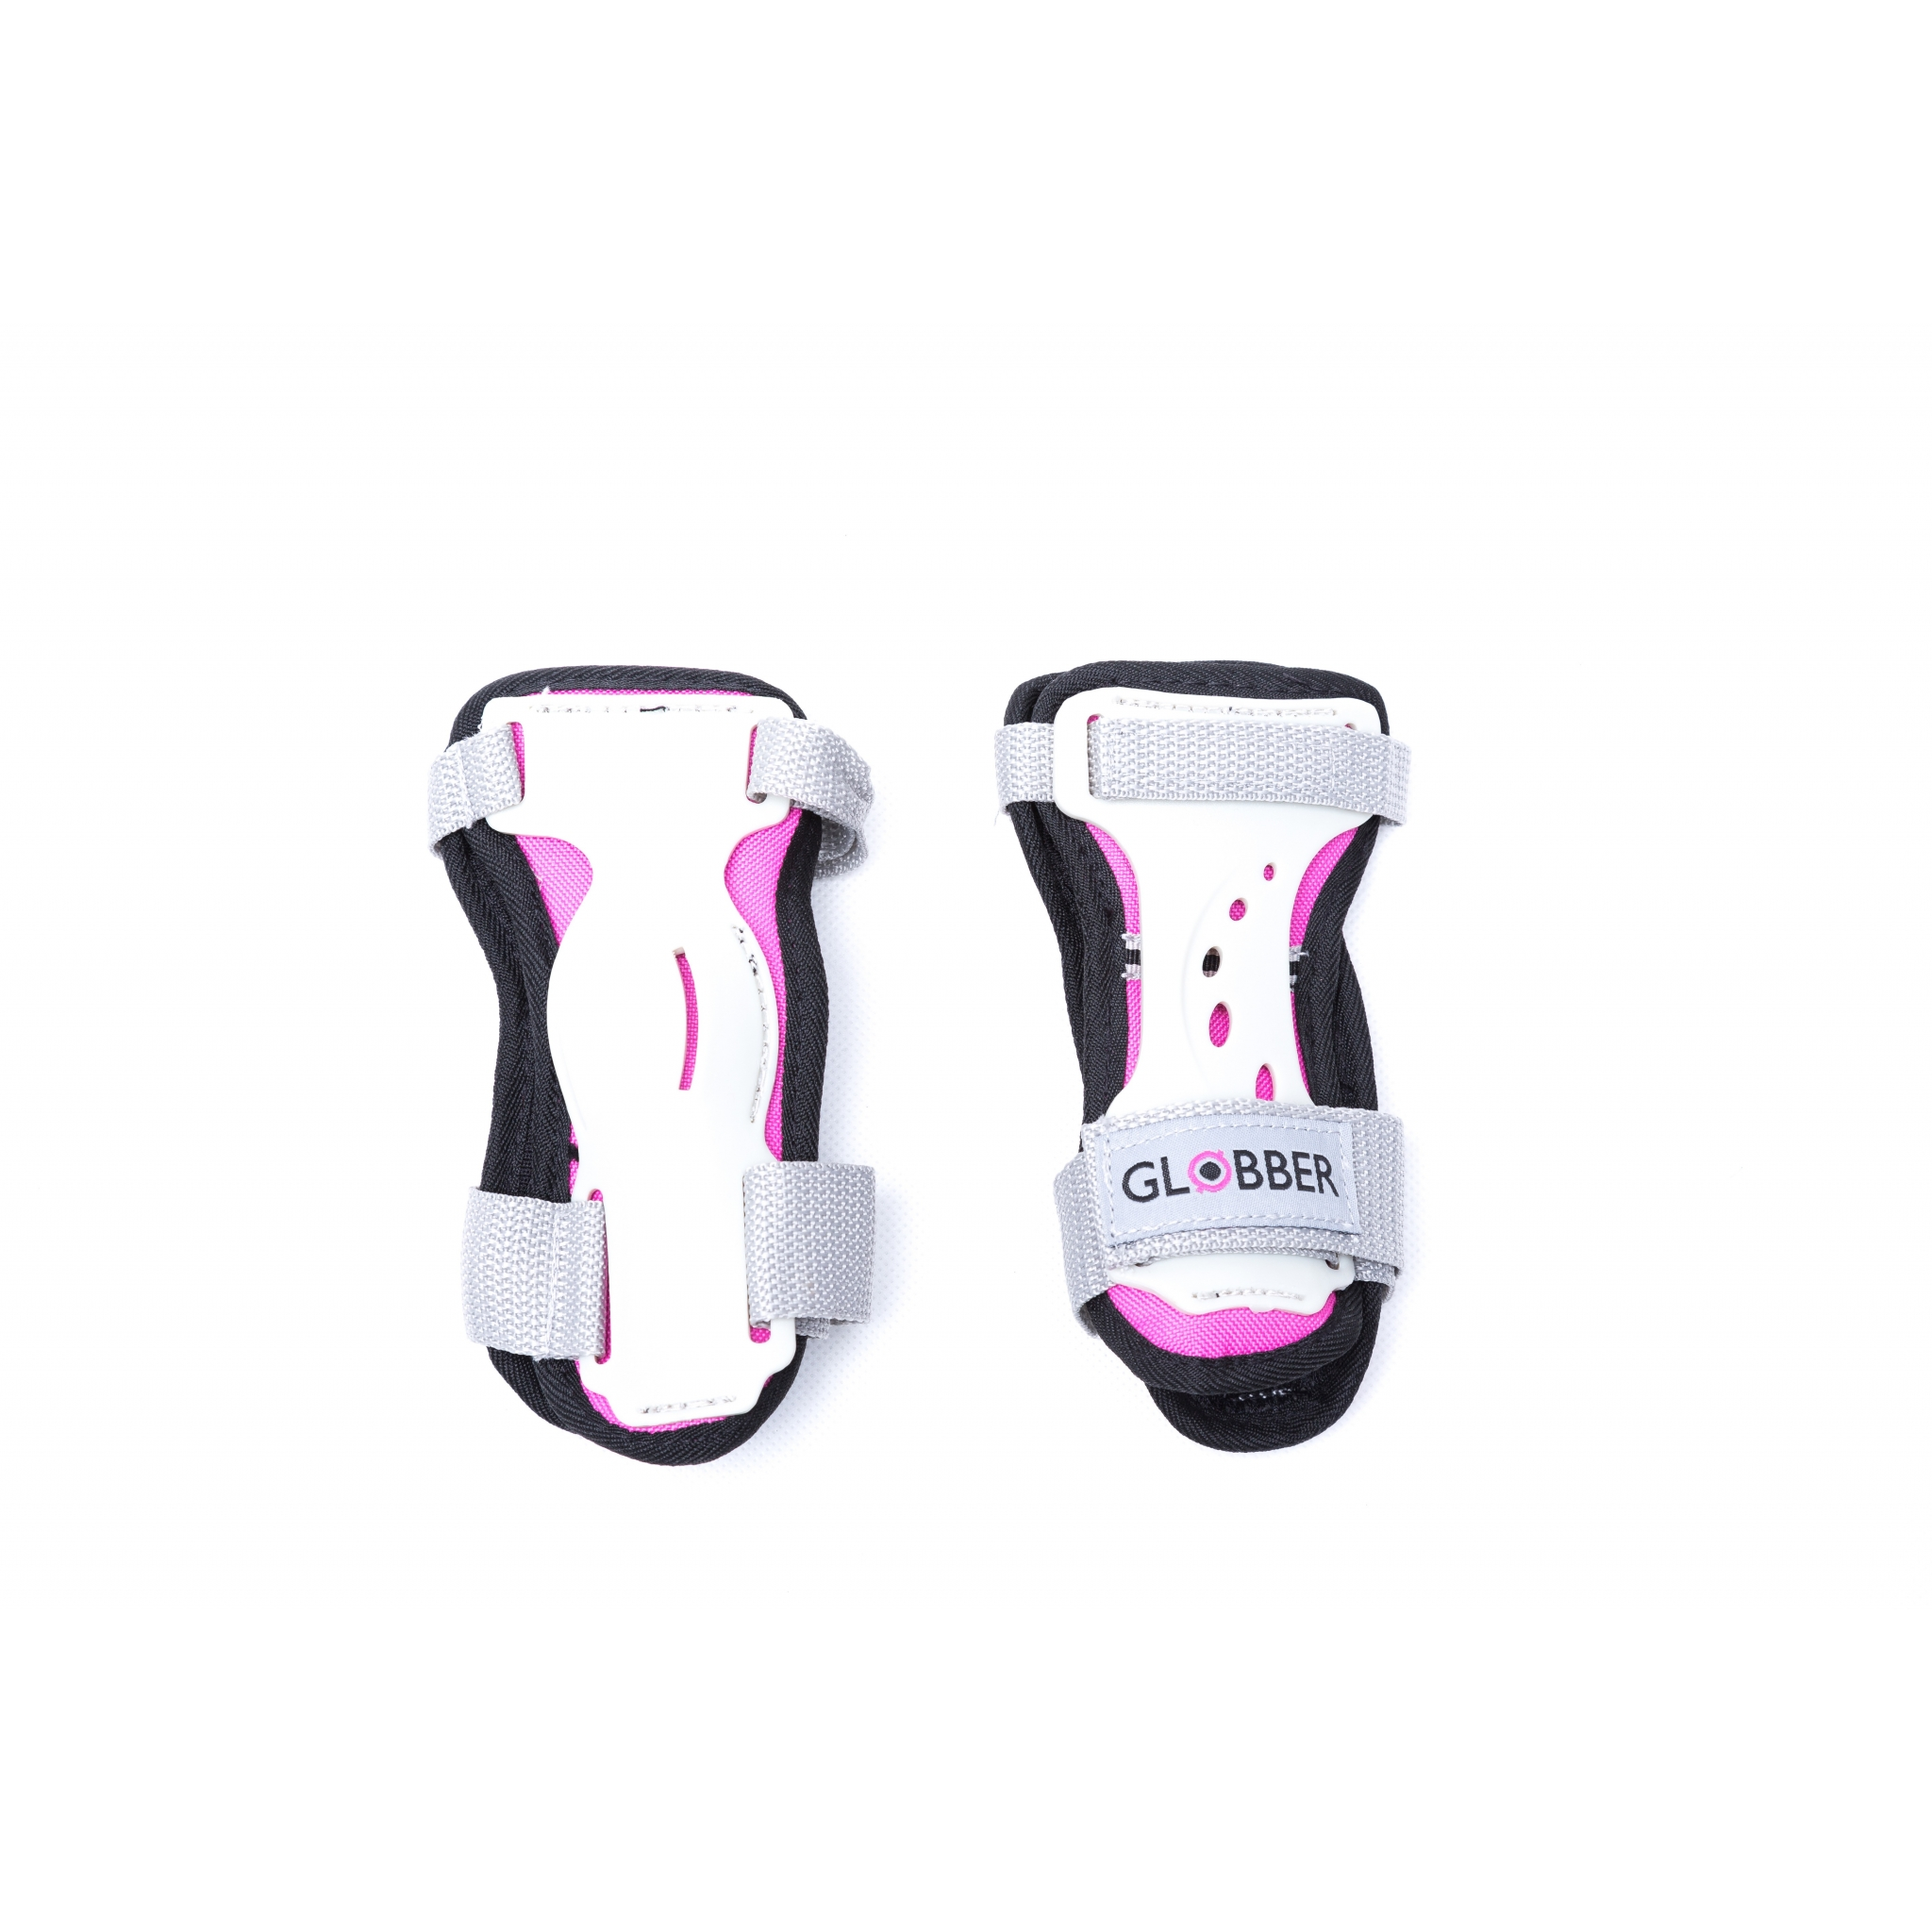 scooter protective gear for kids - Globber 3